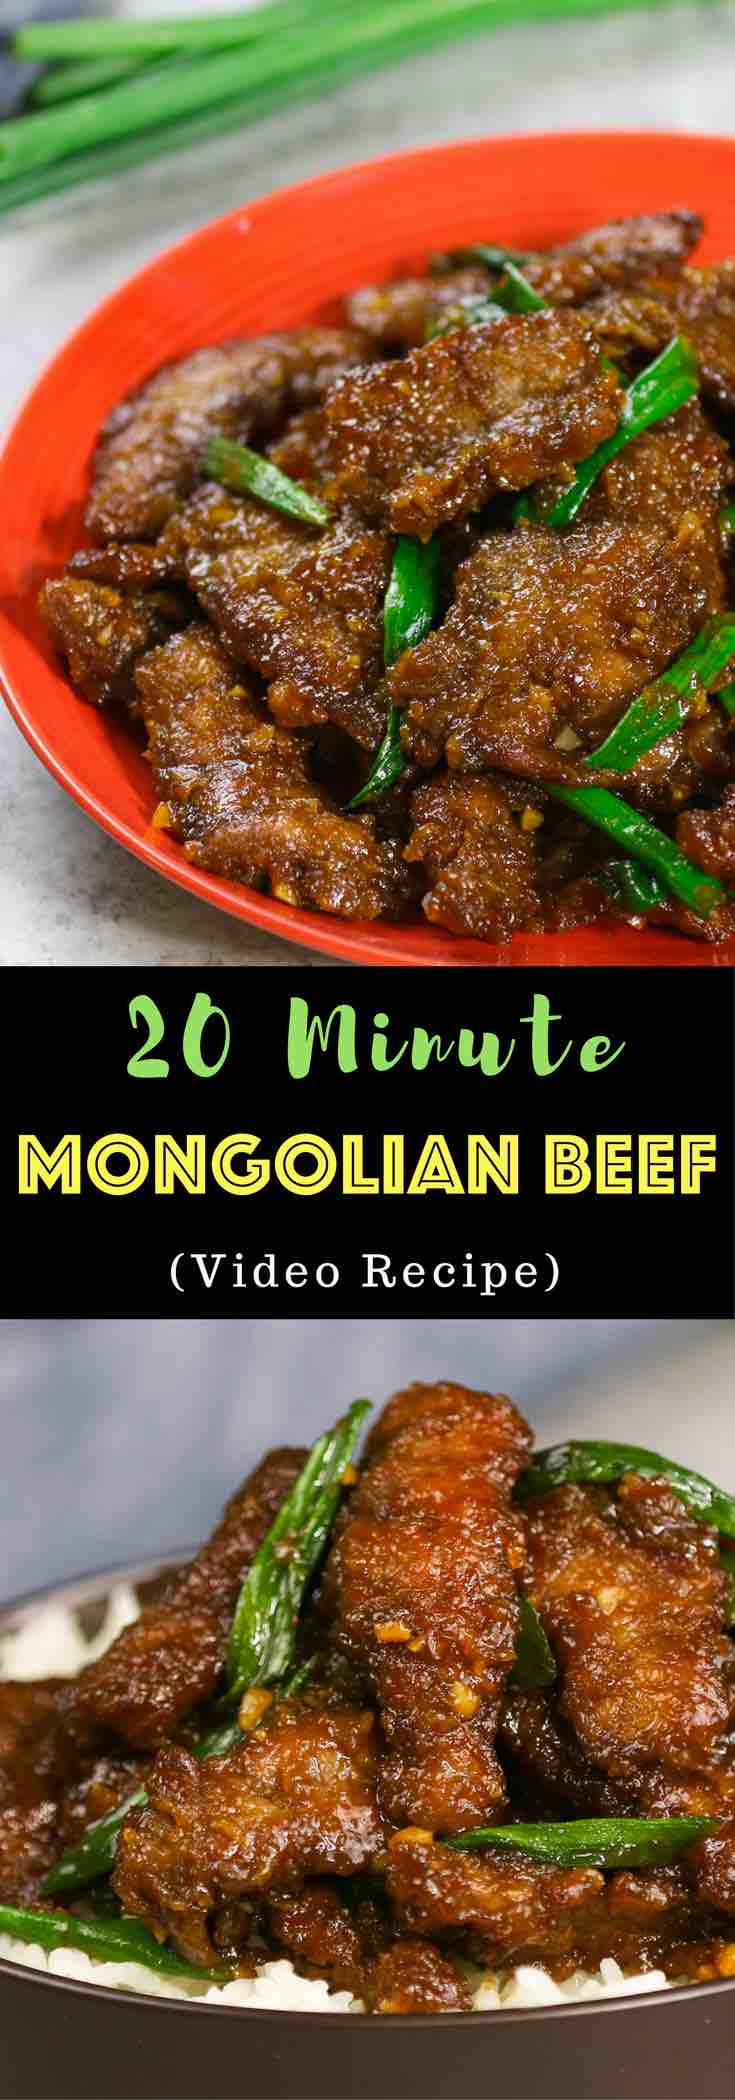 Mongolian Beef - a copycat recipe for the PF Changs Chinese-American menu item featuring tender beef with a sweet garlic and ginger sauce, perfect for a quick lunch or dinner that's easy to make in just 20 minutes. Video recipe. tipbuzz.com